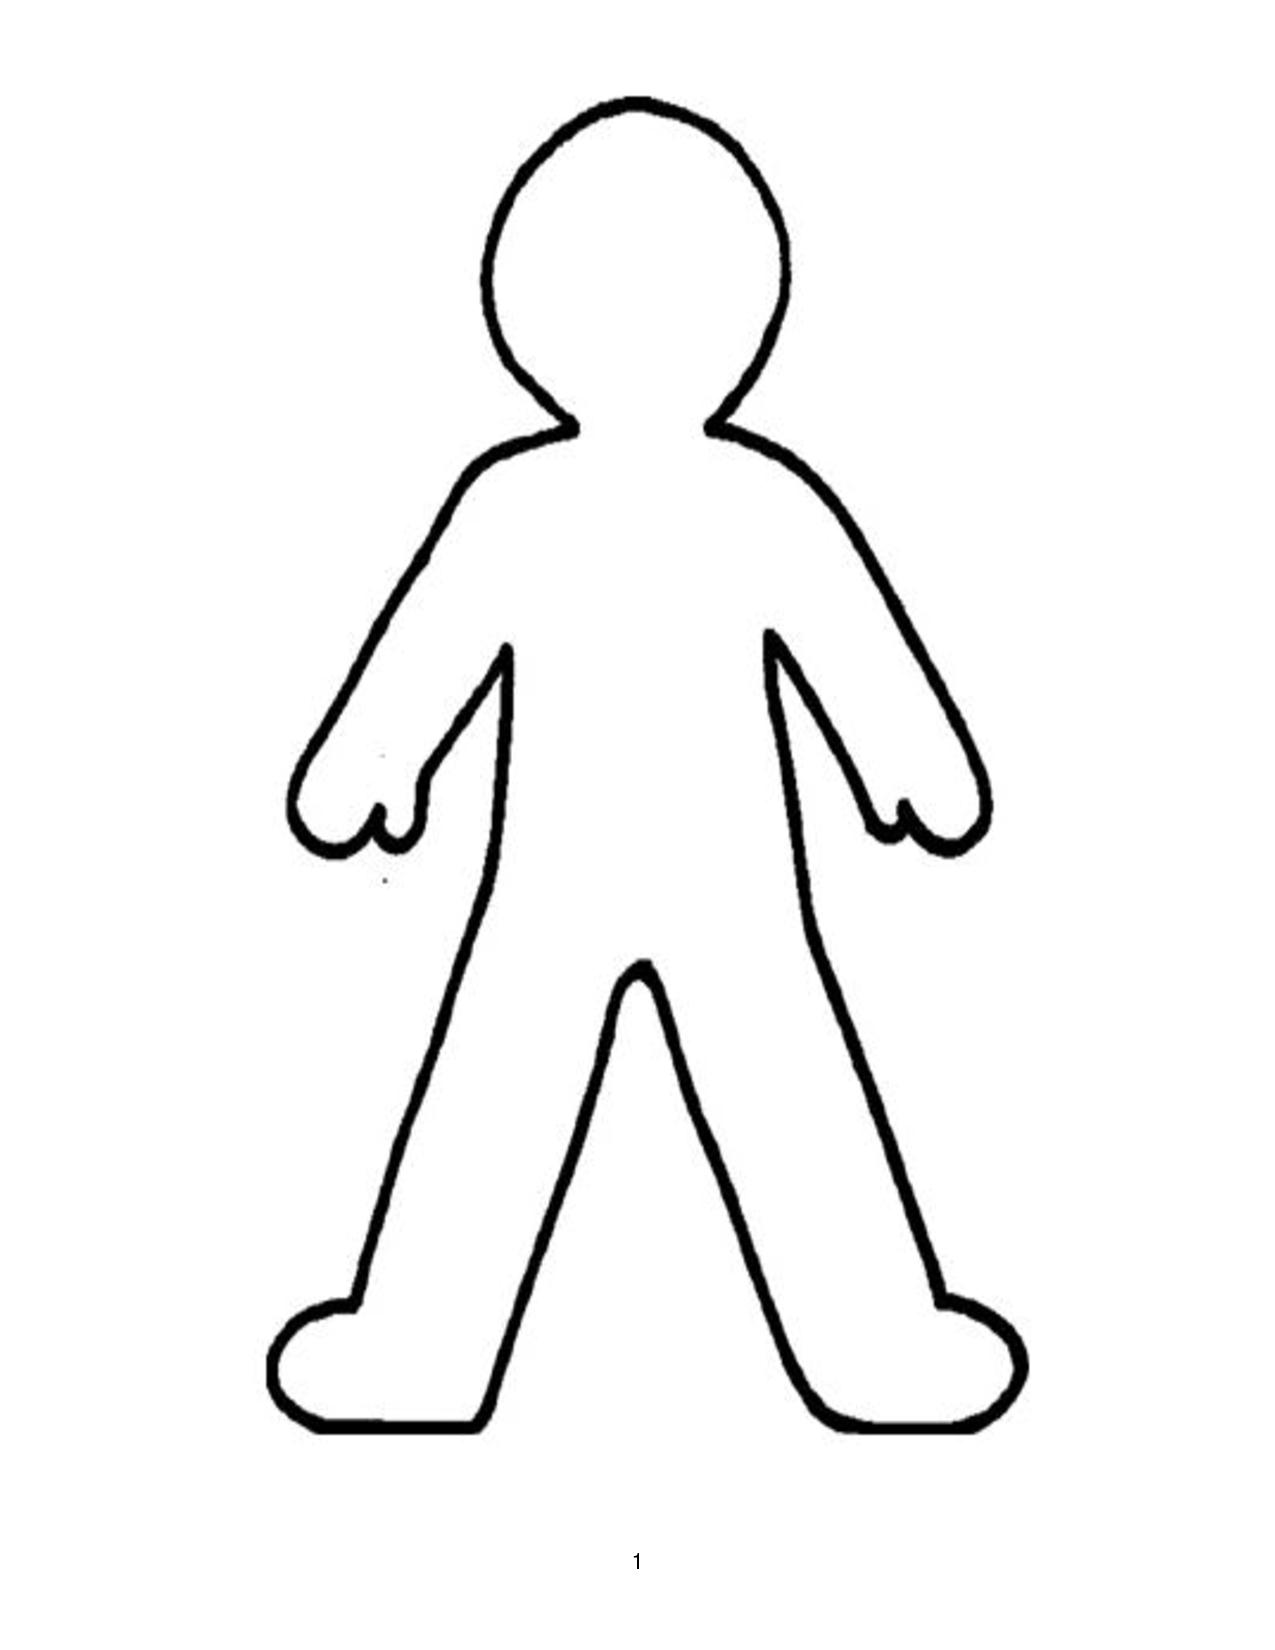 Doll Outline Template - ClipArt Best